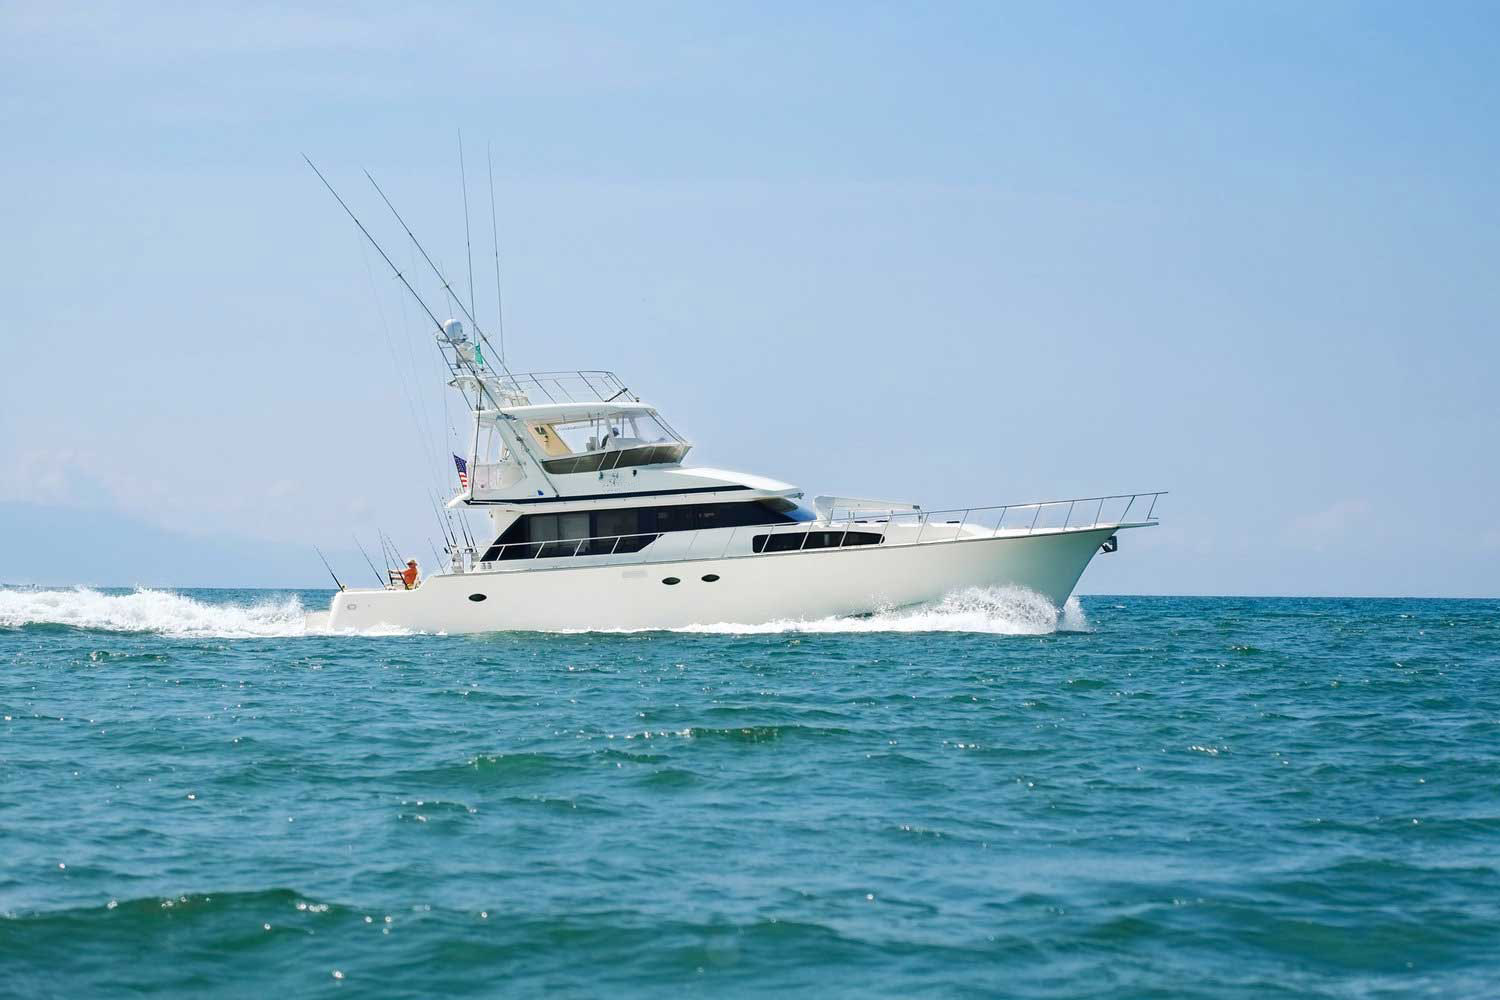 1-Mikelson-64-Exterior-Boat